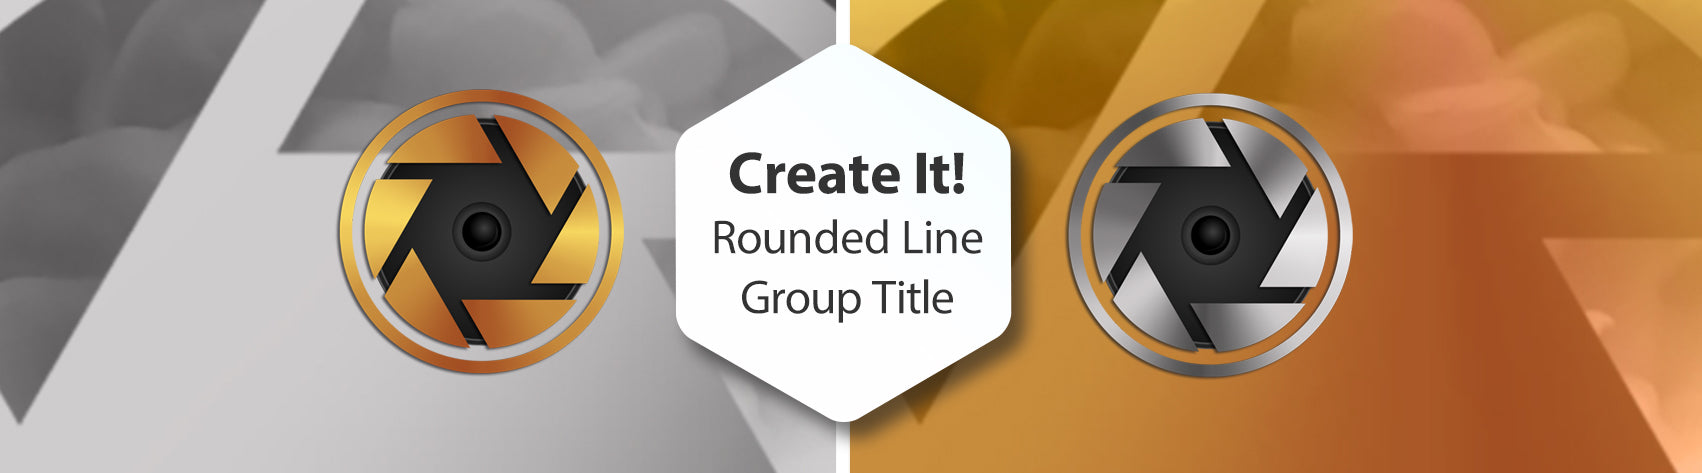 Create It! Rounded Line Group Title